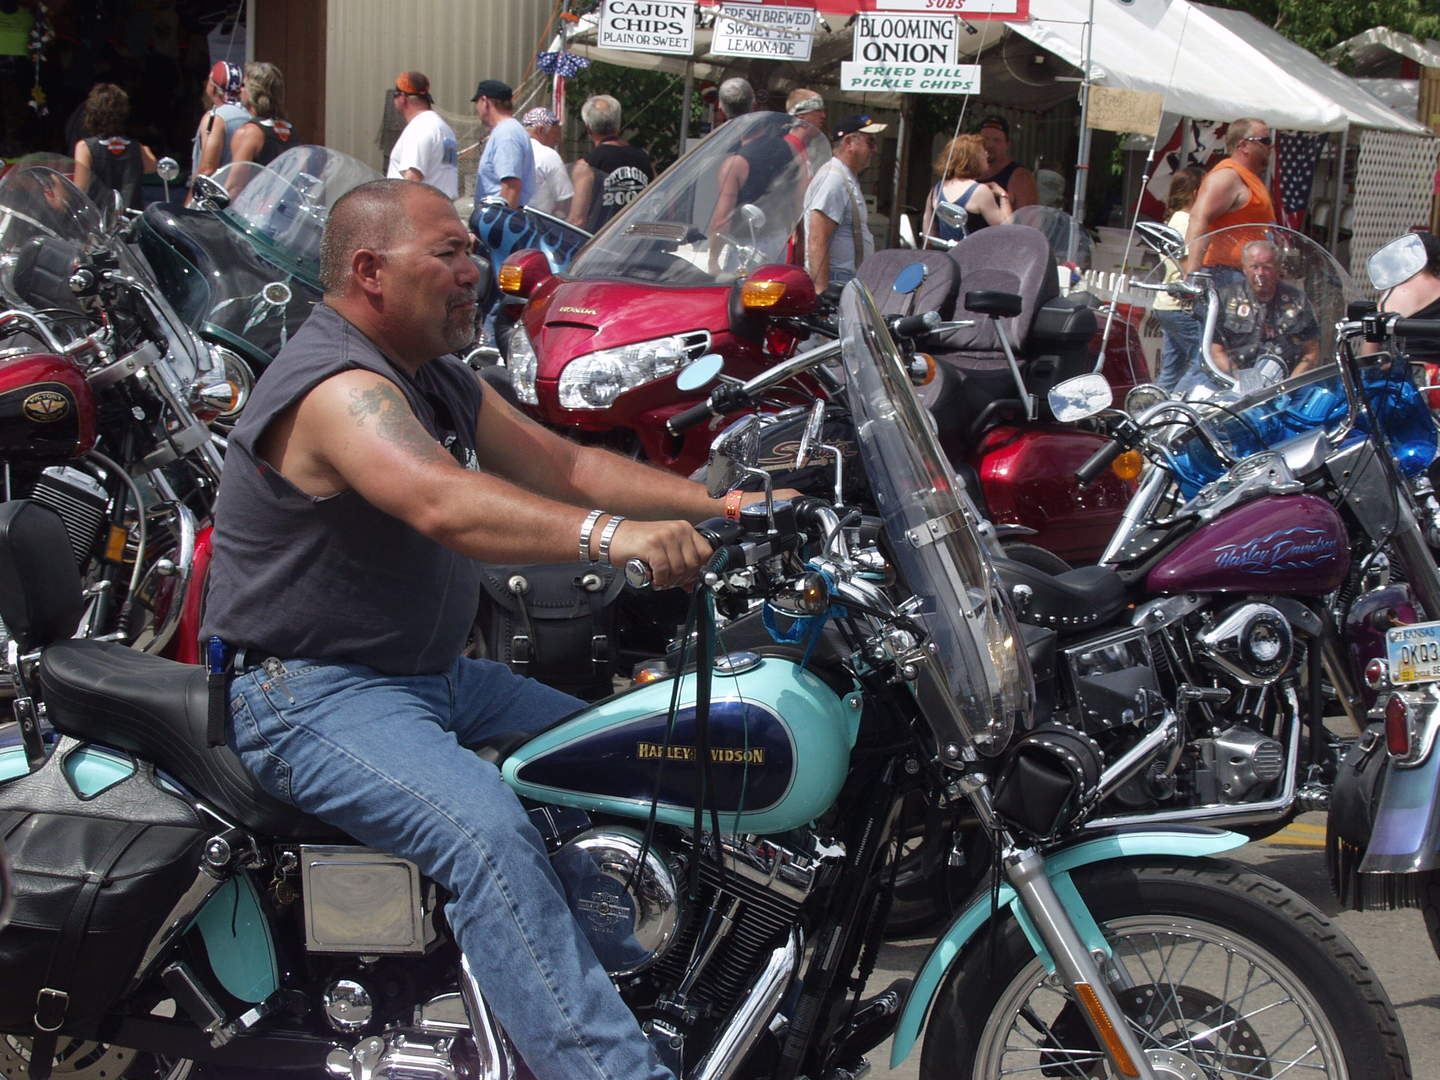 man on harley